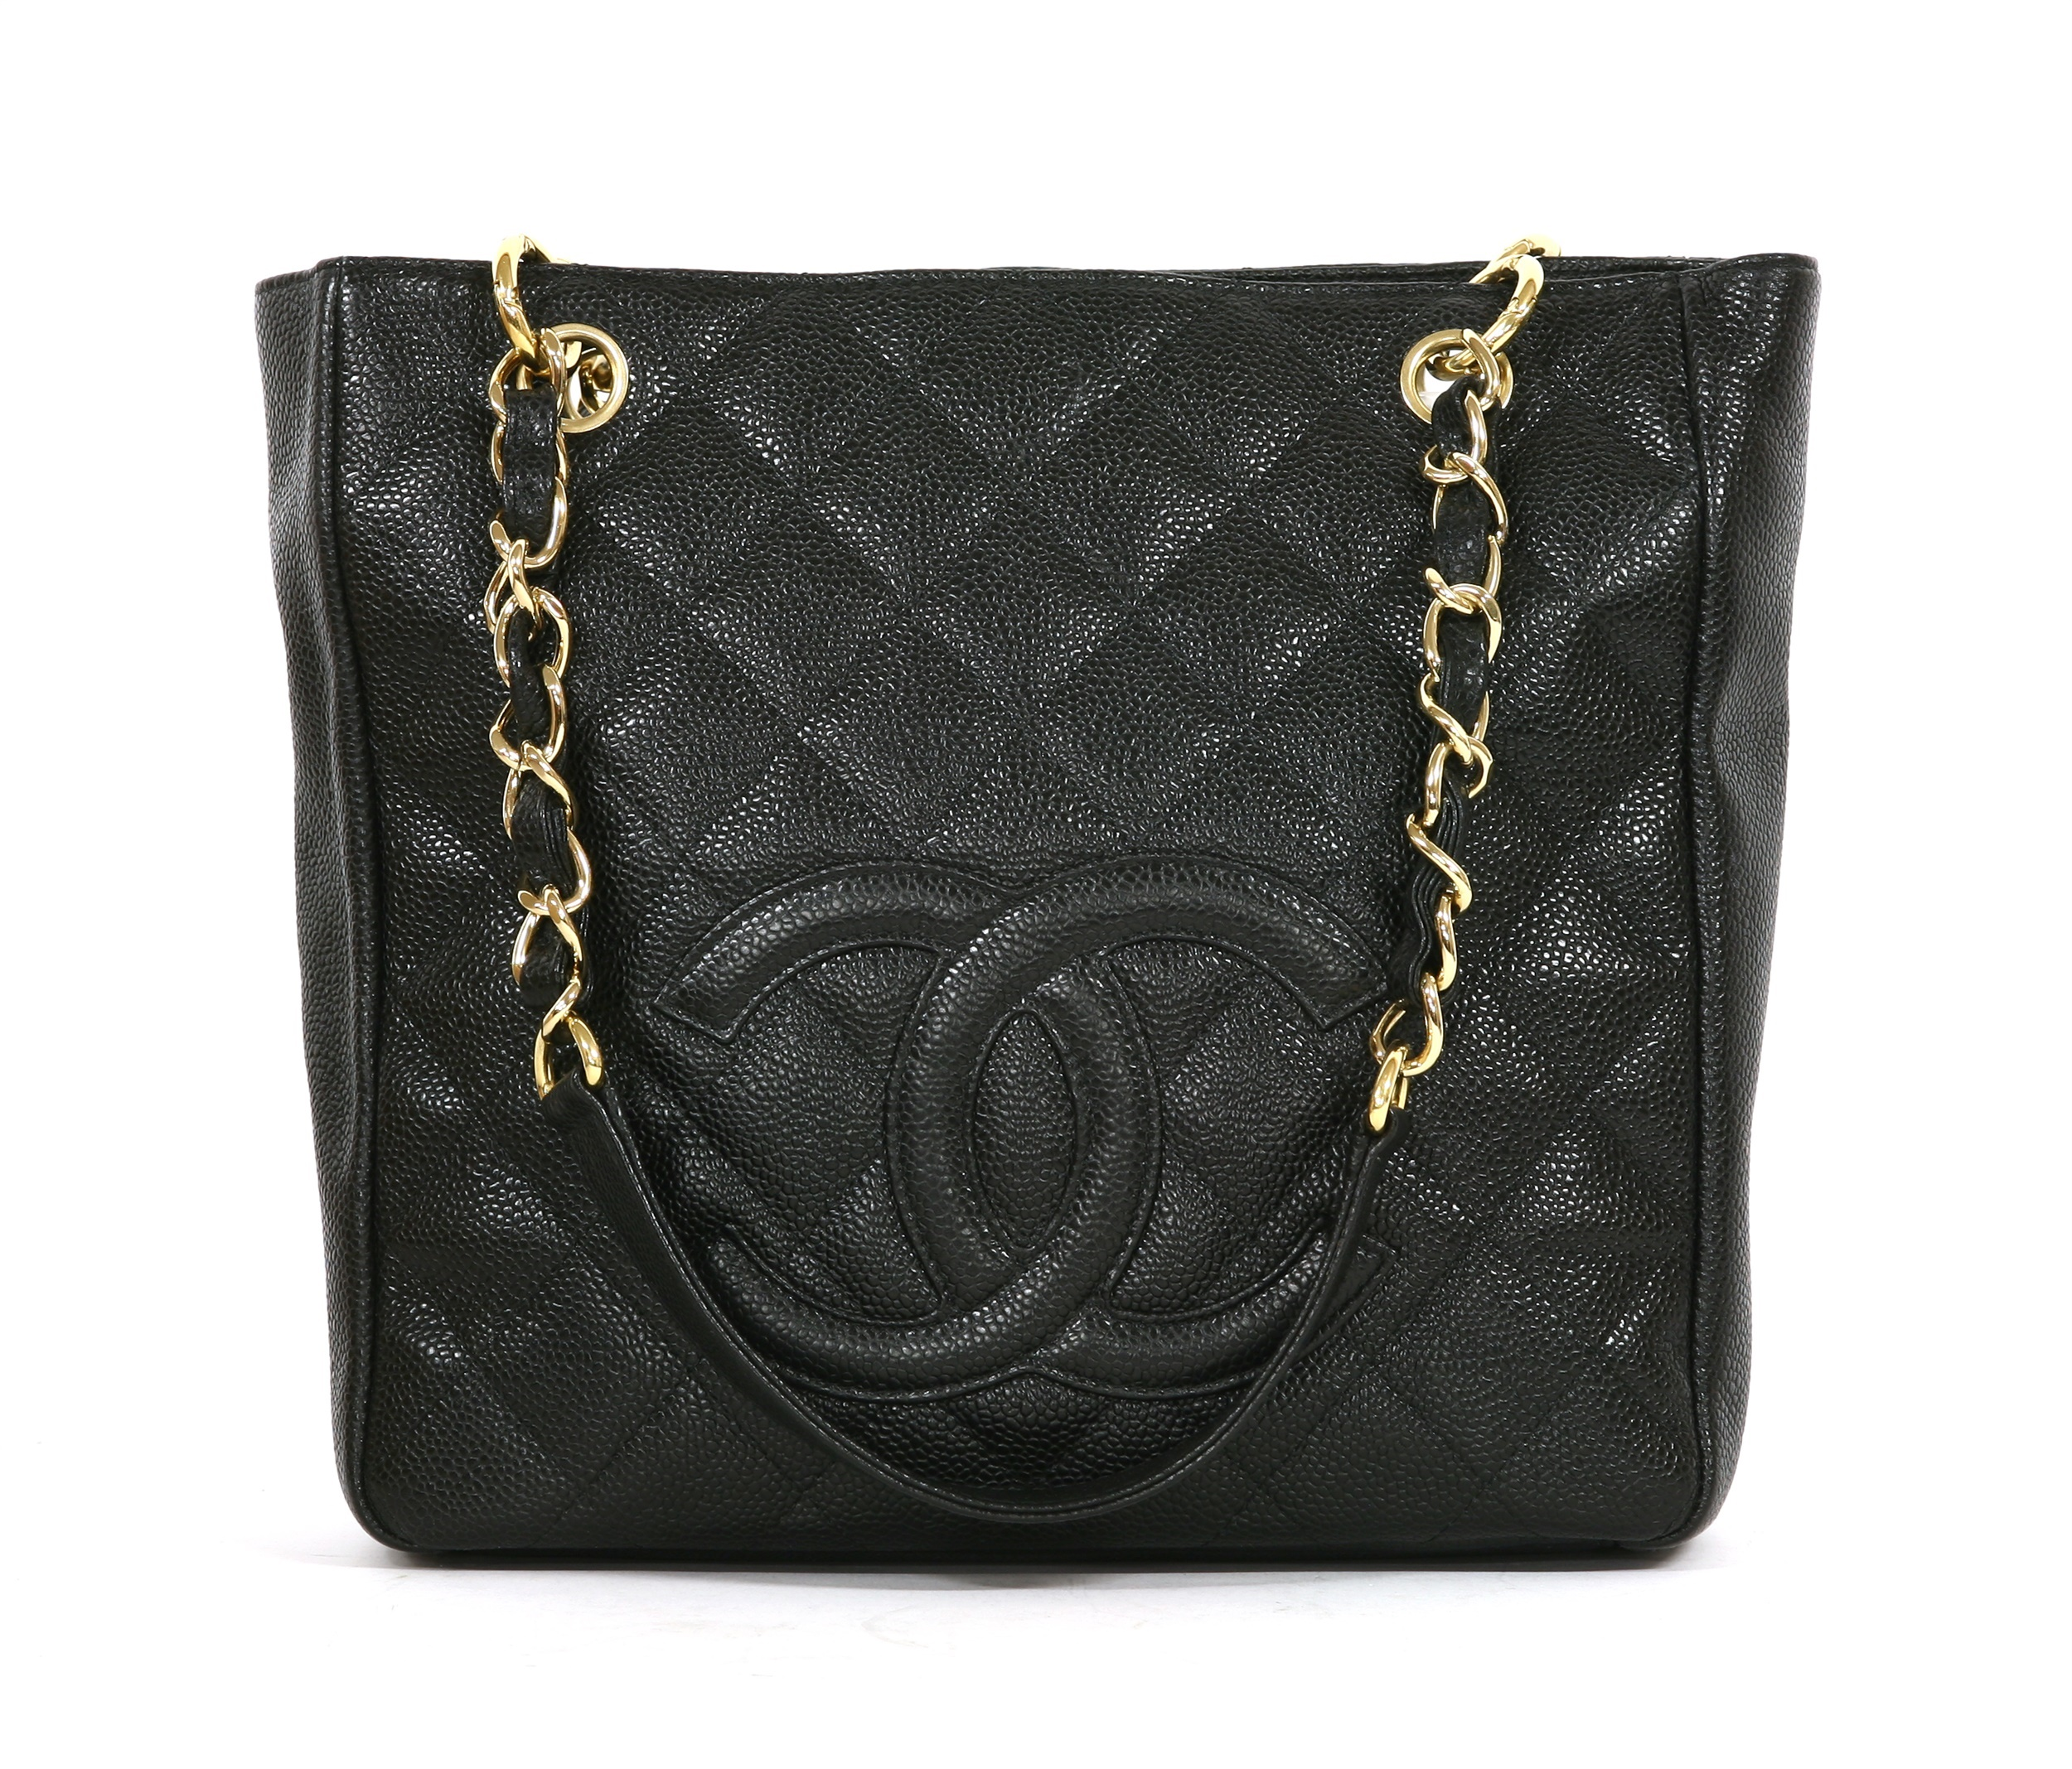 A Chanel black caviar petit shopping tote